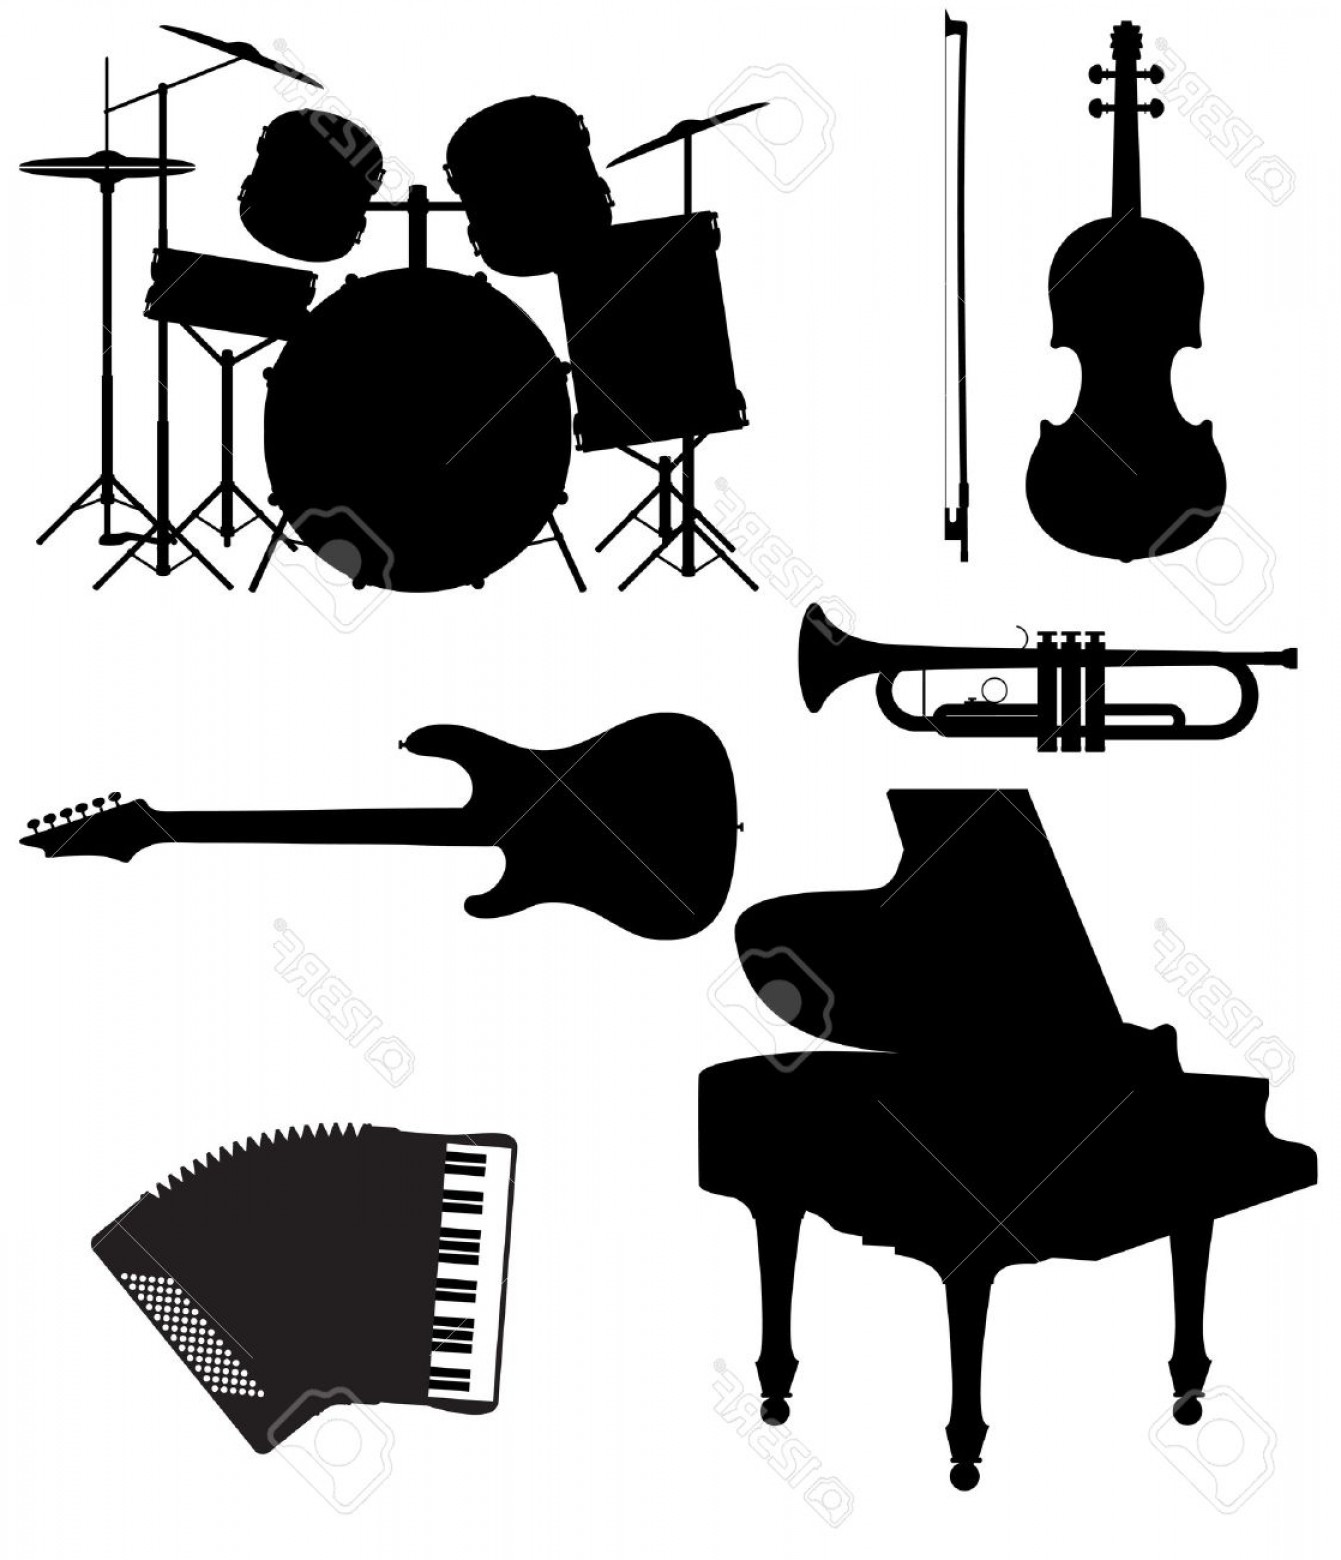 Musical Keyboard Vector: Photoset Icons Silhouettes Of Musical Instruments Vector Illustration Isolated On White Background